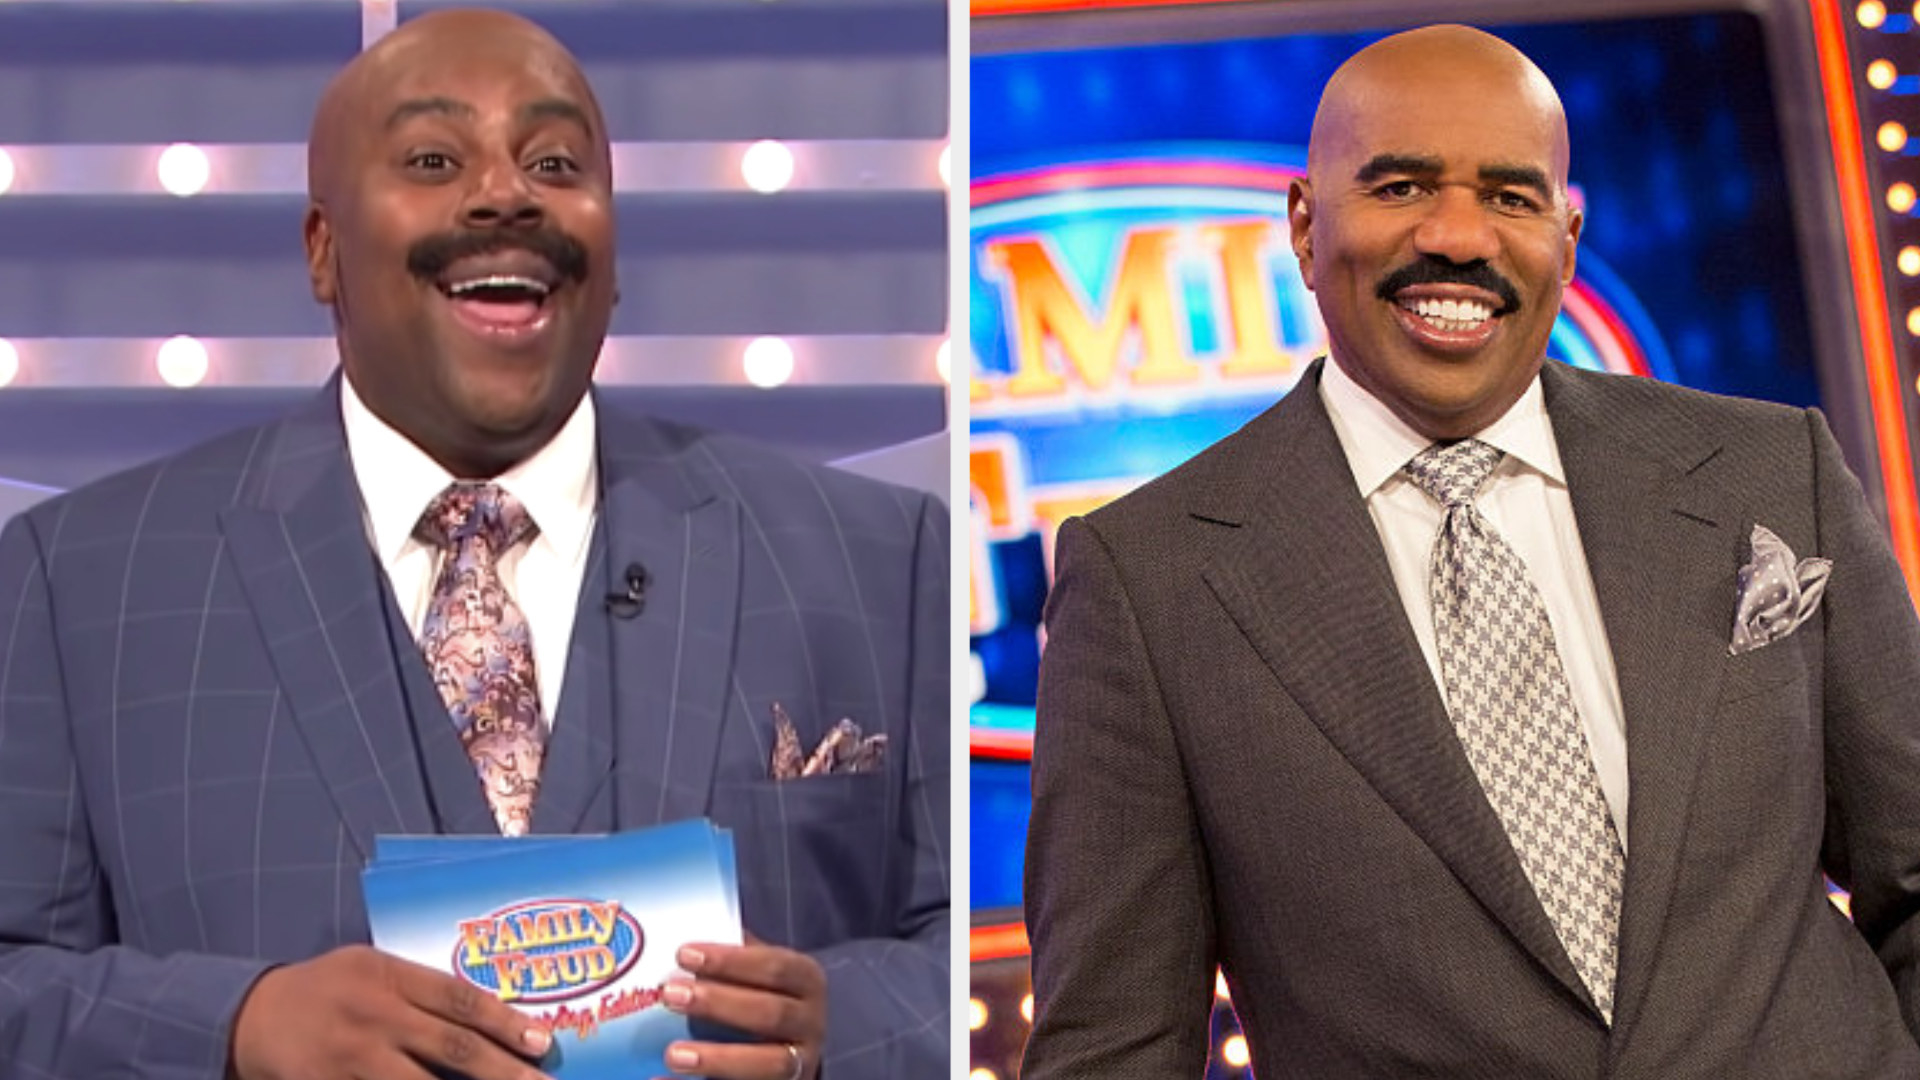 """Kenan Thompson in a bald cap hosting """"Family Feud"""" side by side with Steve Harvey actually hosting """"Family Feud"""""""